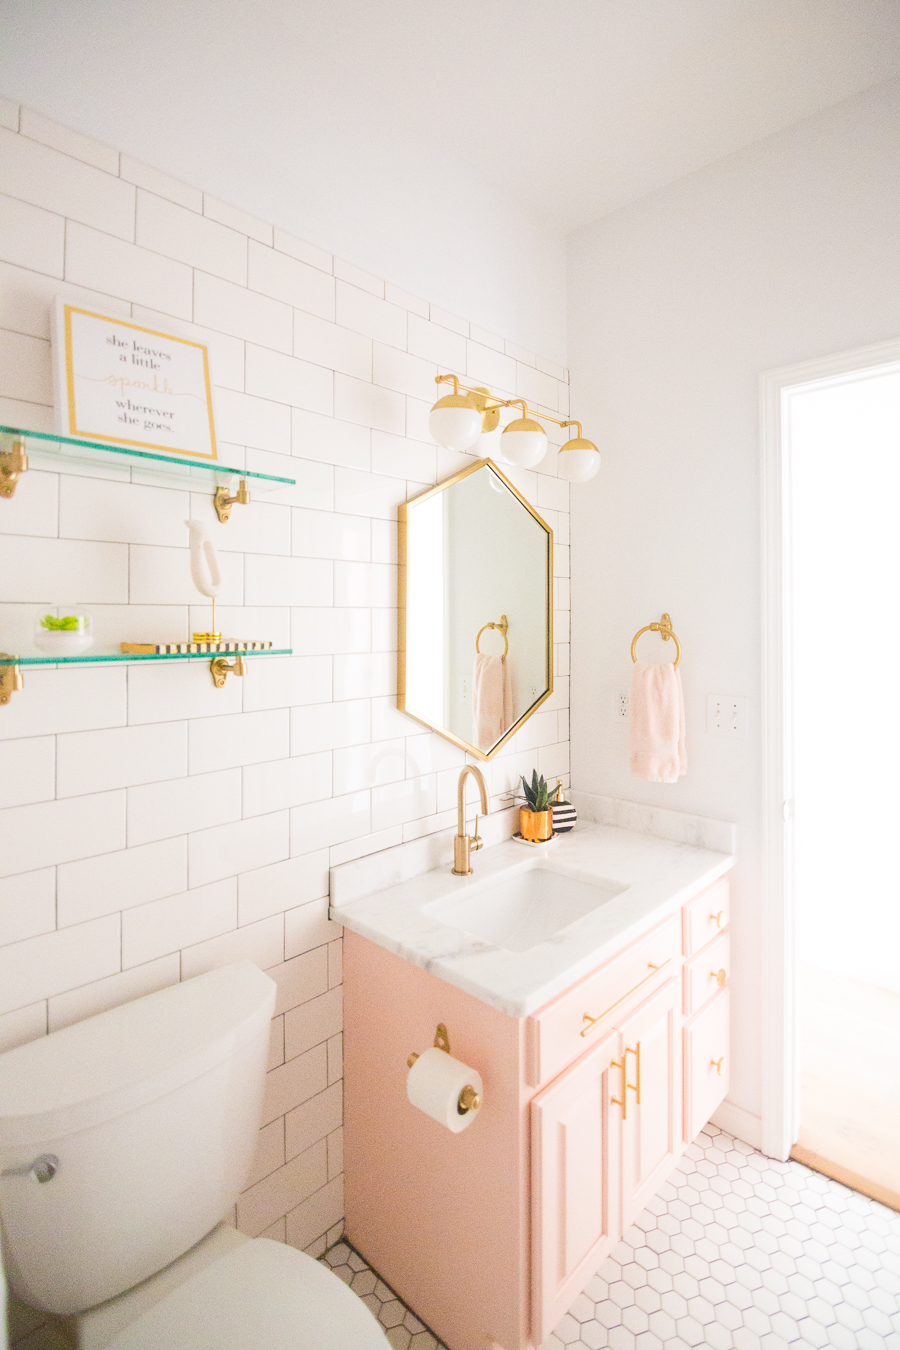 Modern Glam Blush Girls Bathroom Design gold hexagon mirror blush cabinets gold hardware white hexagon floor glass shelves pink bathroom cabinets gold orb sconce-1-2